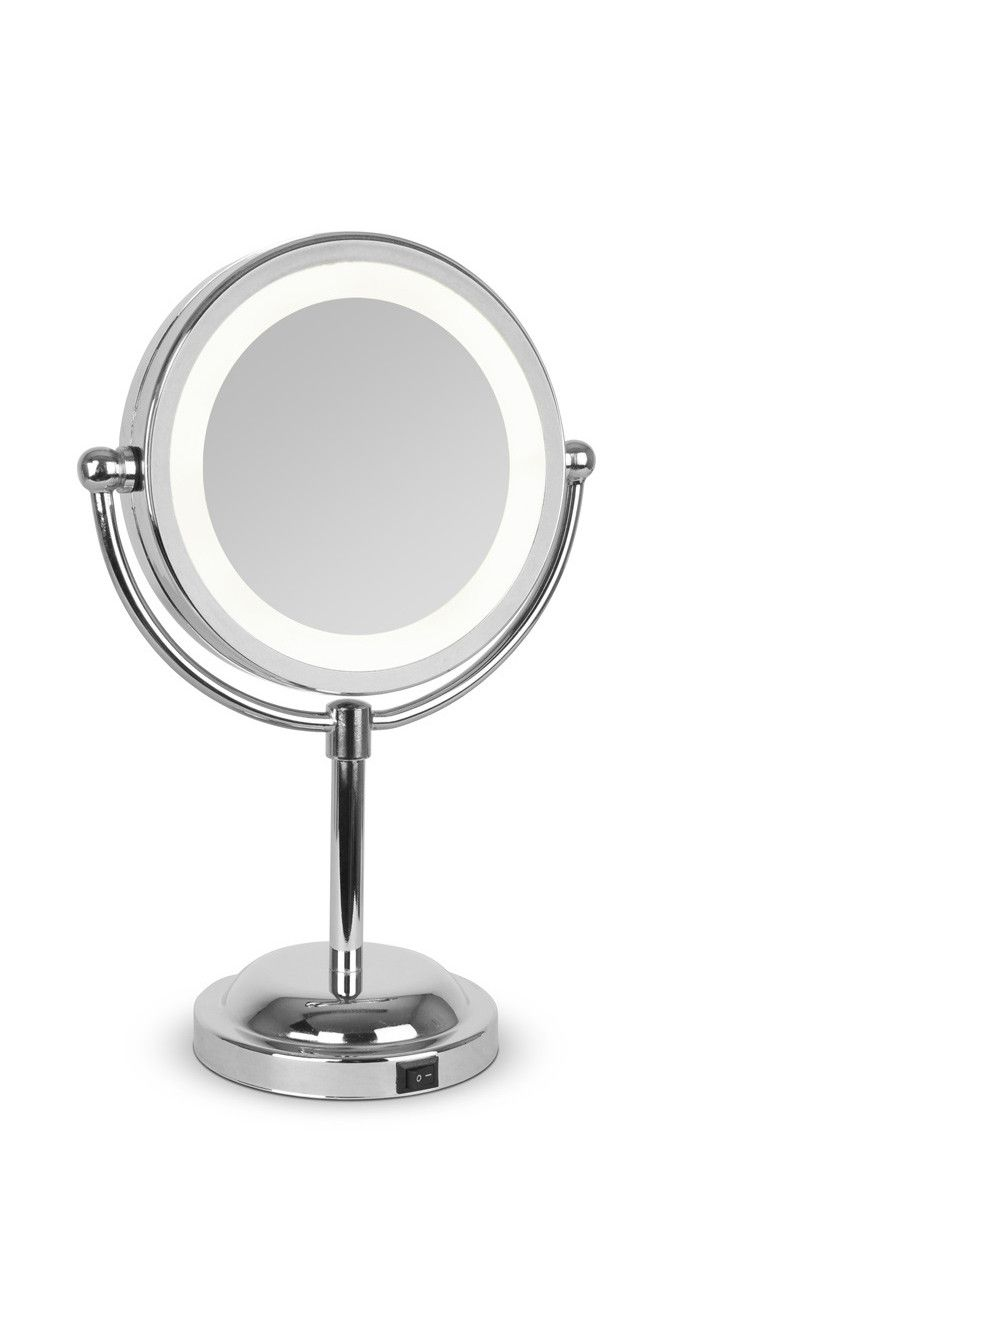 Round Chrome Free Standing Light Up Mirror Circle Light Mirror Mirror Table Mirrors For Makeup